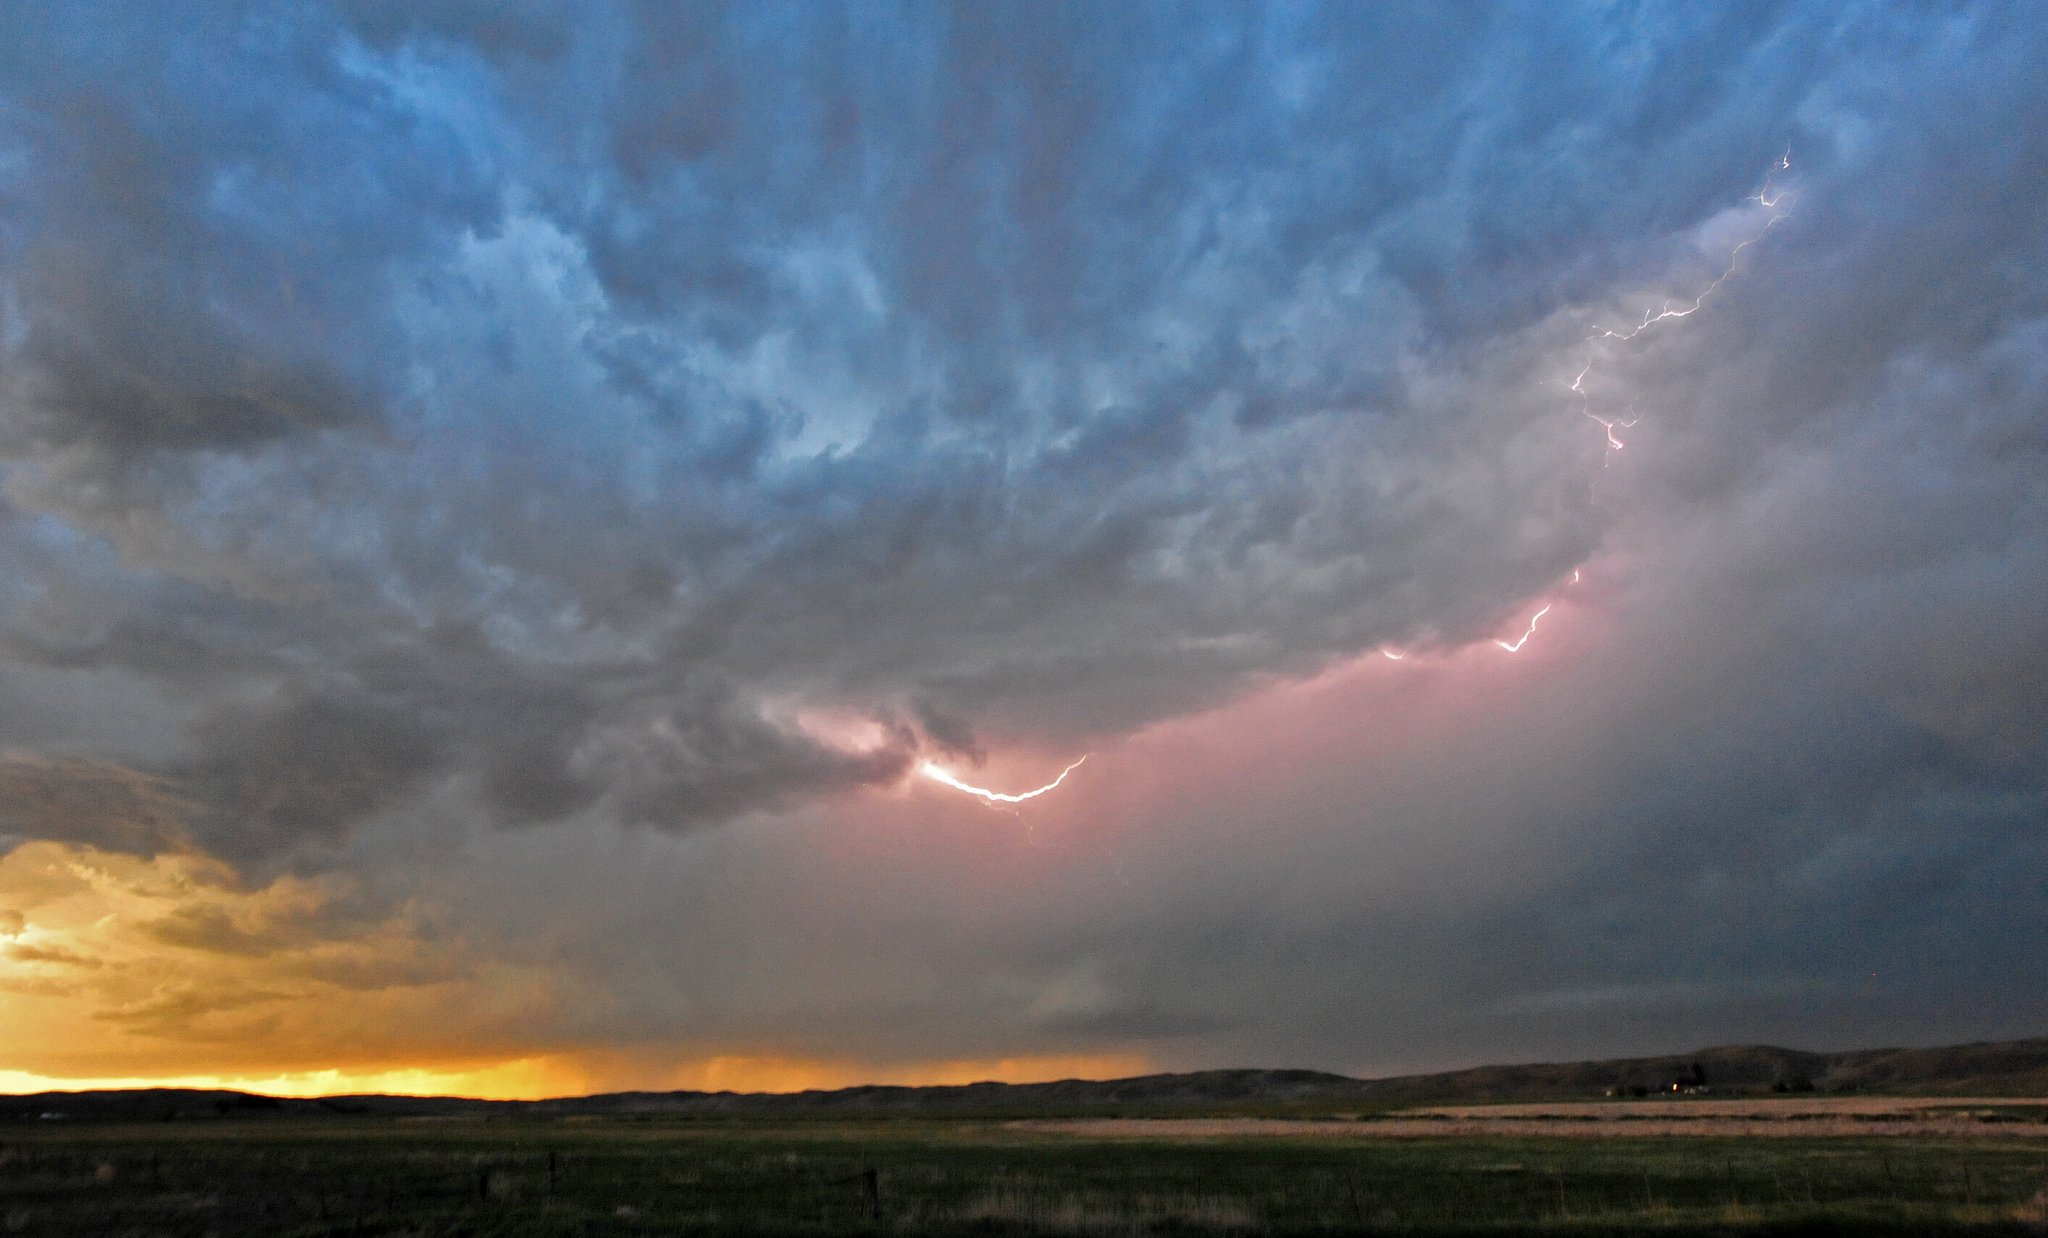 clouds and lightning approach on a horizon